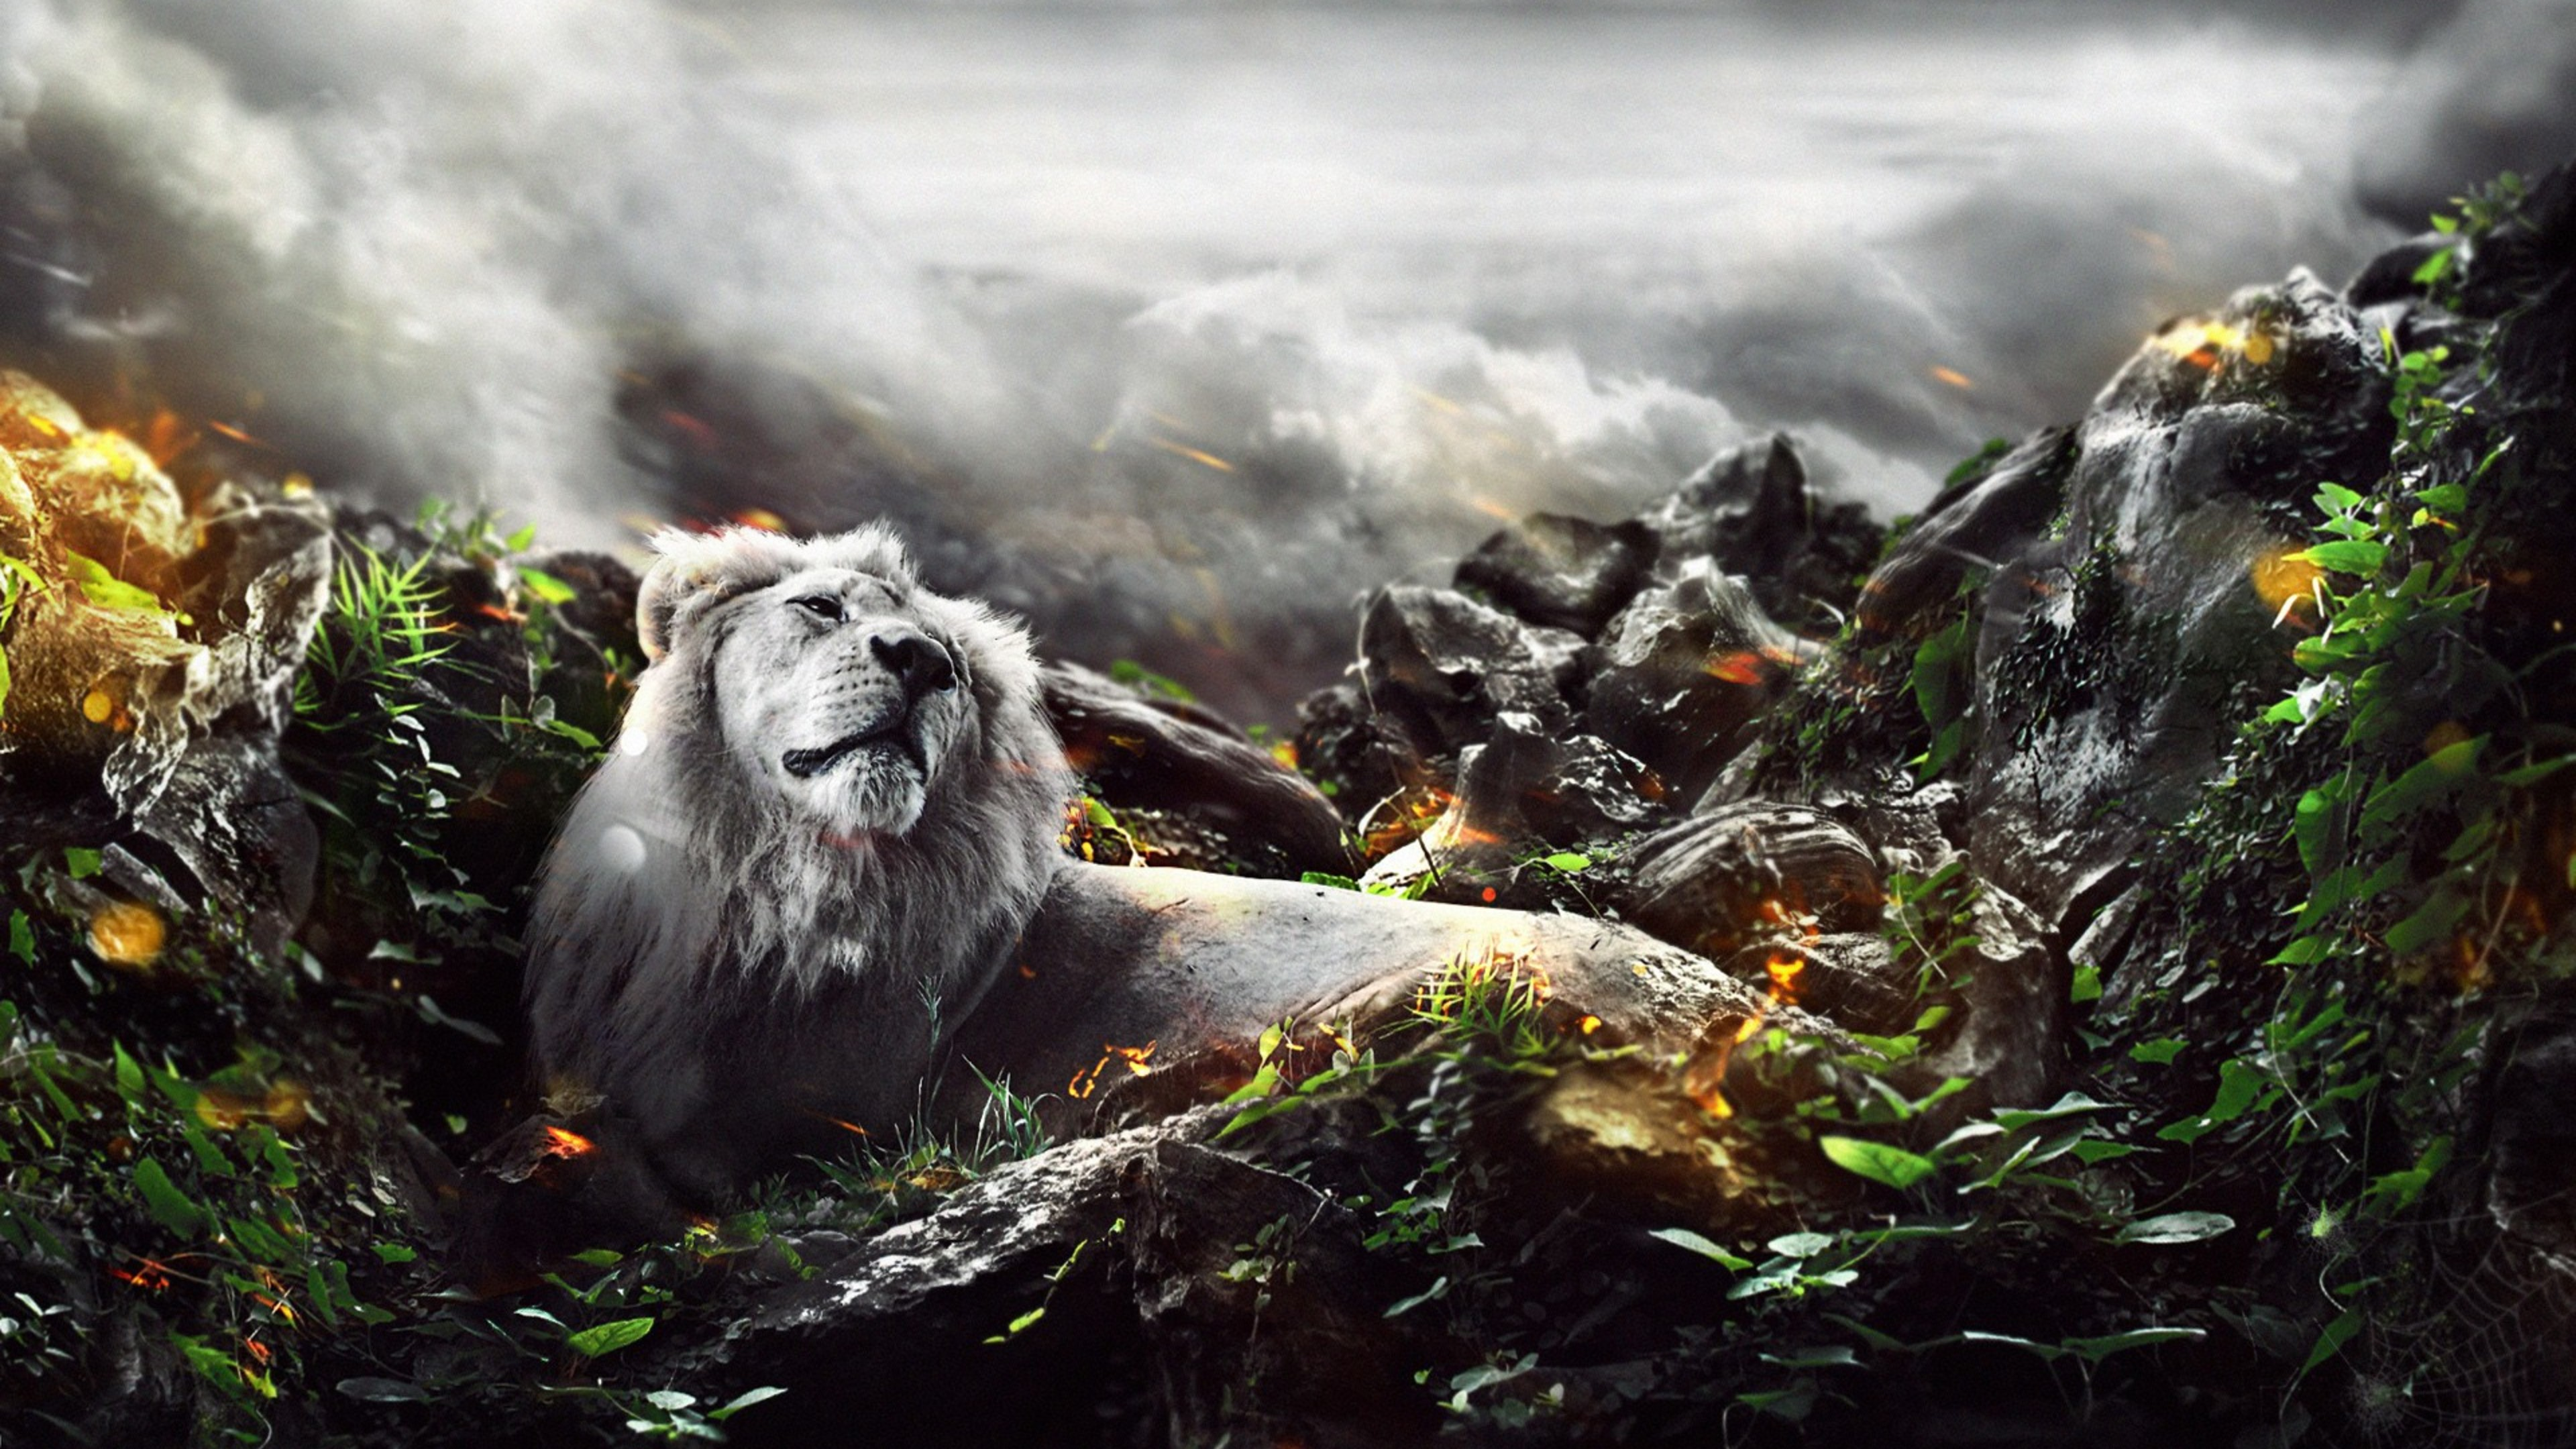 Jungle Wallpaper 4k 3840x2160 Download Hd Wallpaper Wallpapertip